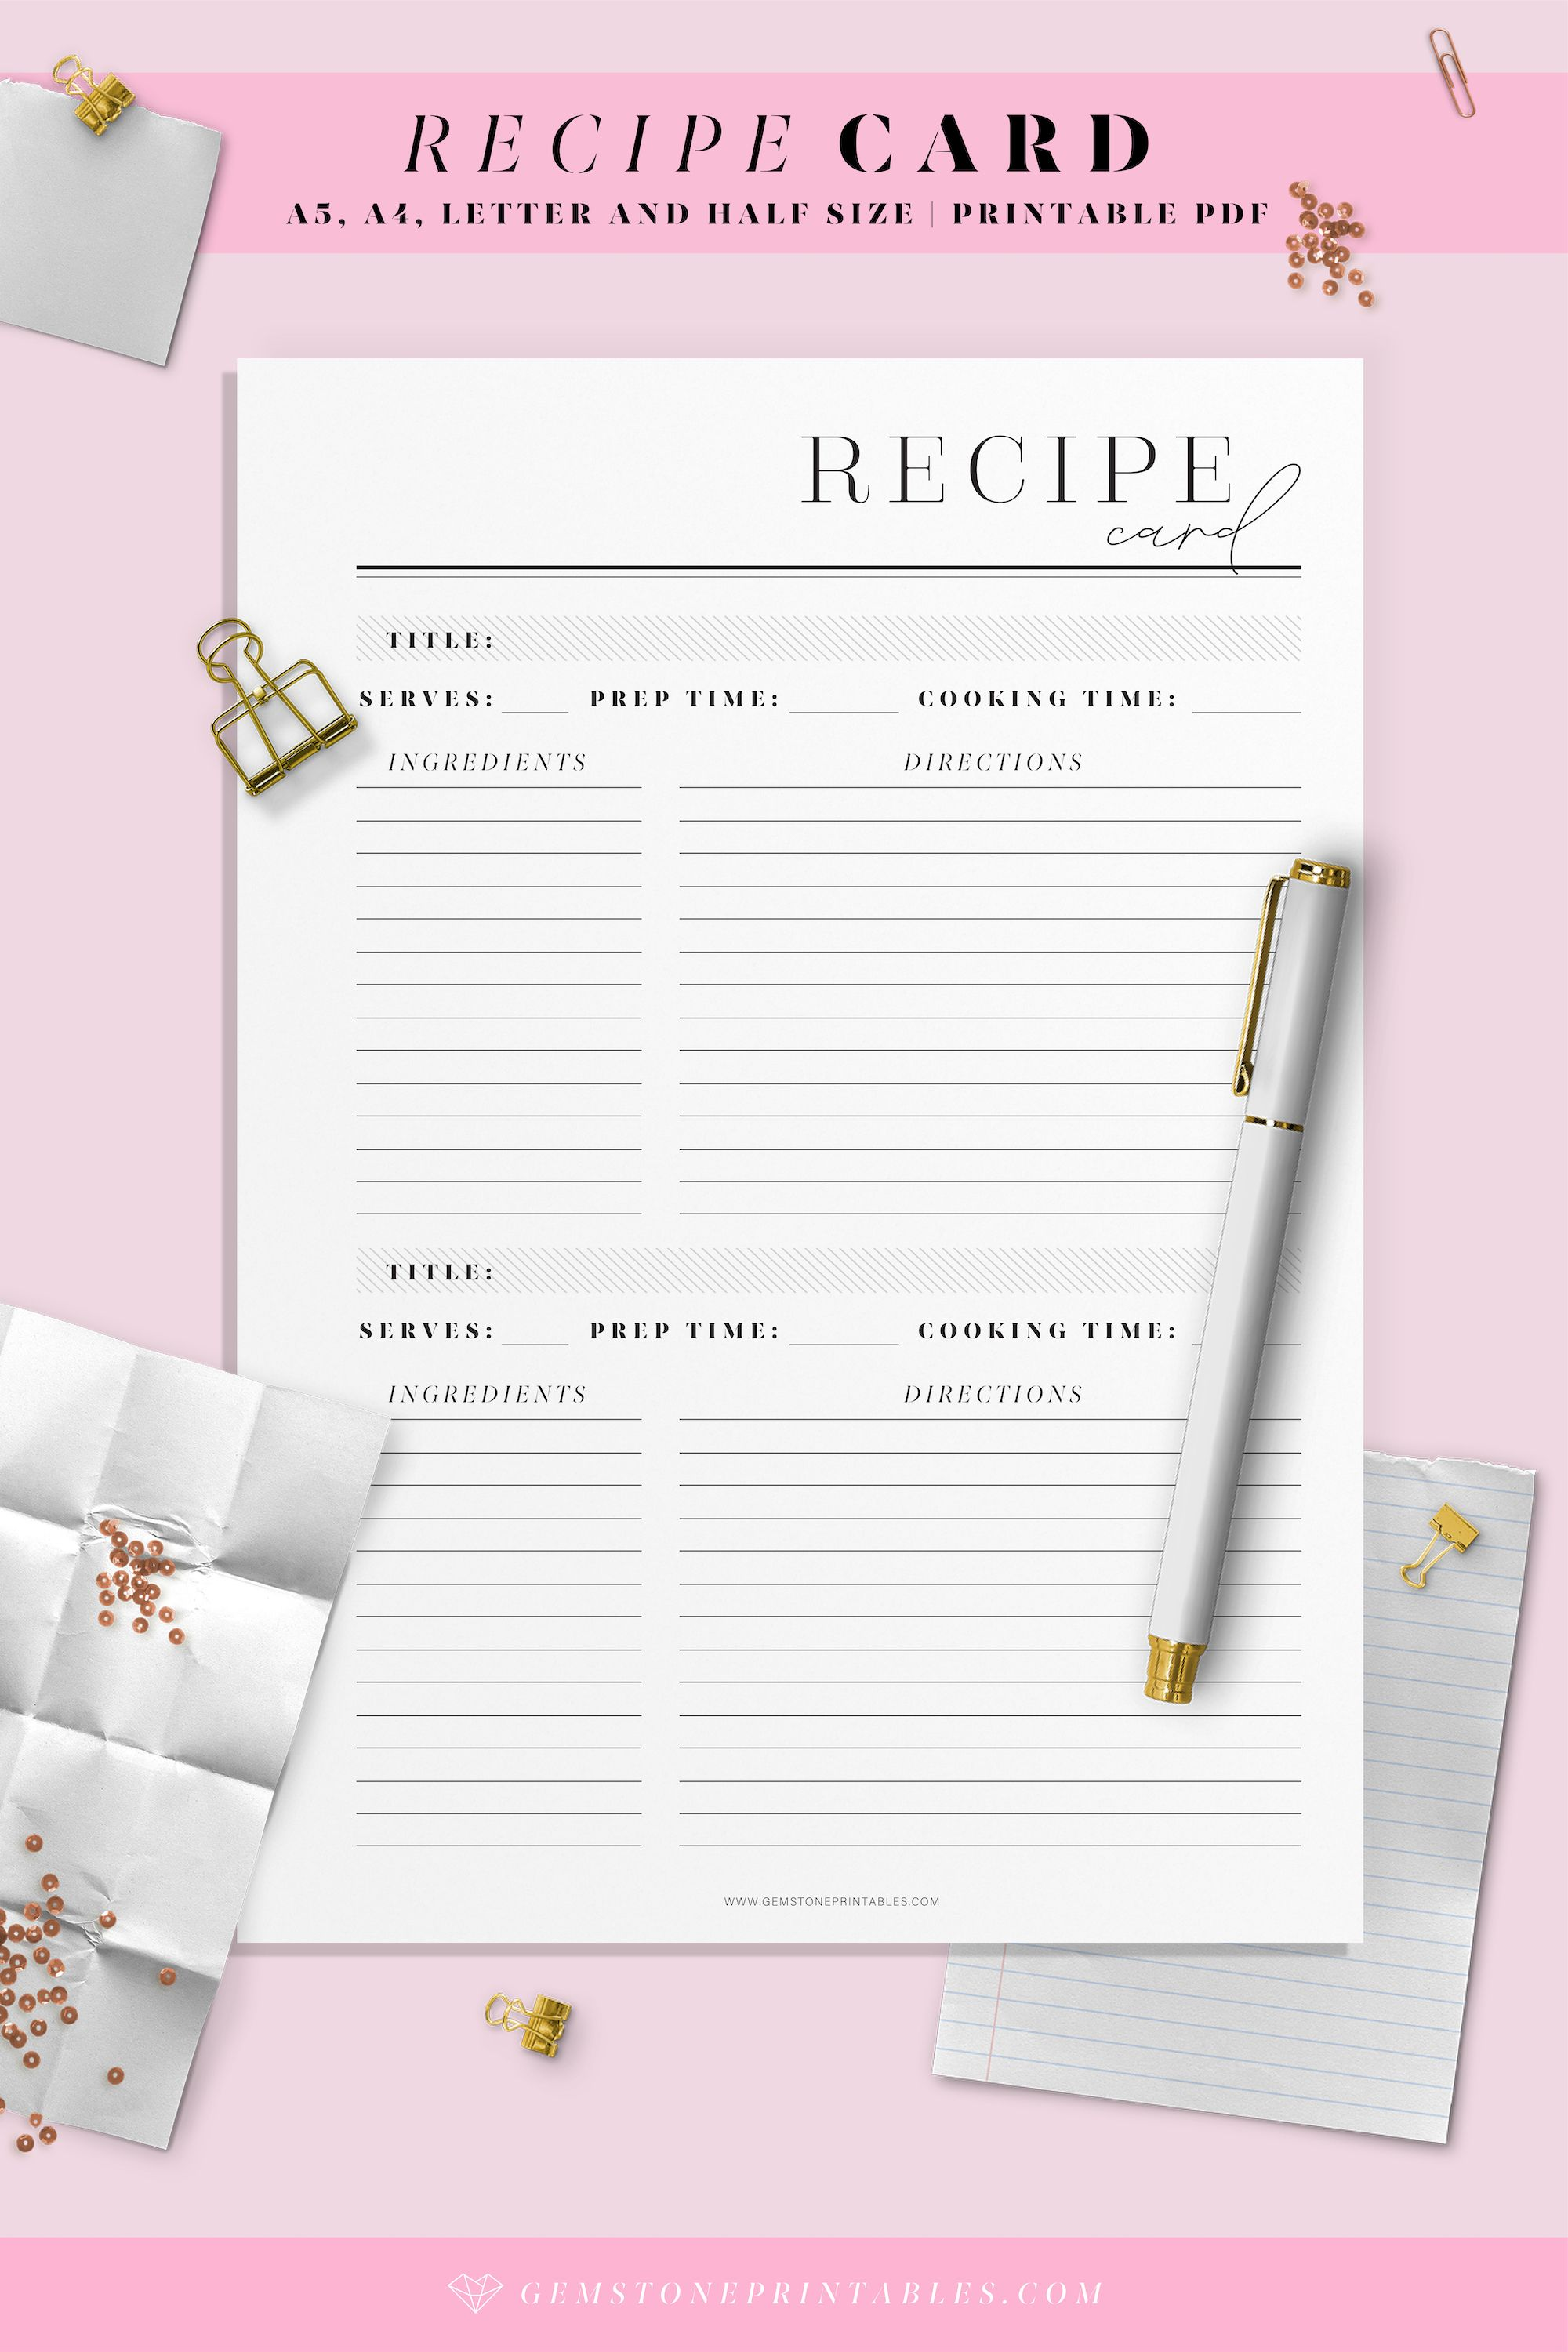 Recipe Card Template Printable Planner A4 A5 Letter And Etsy In 2021 Recipe Cards Printable Templates Agenda Planner Printable Printable Planner Pages